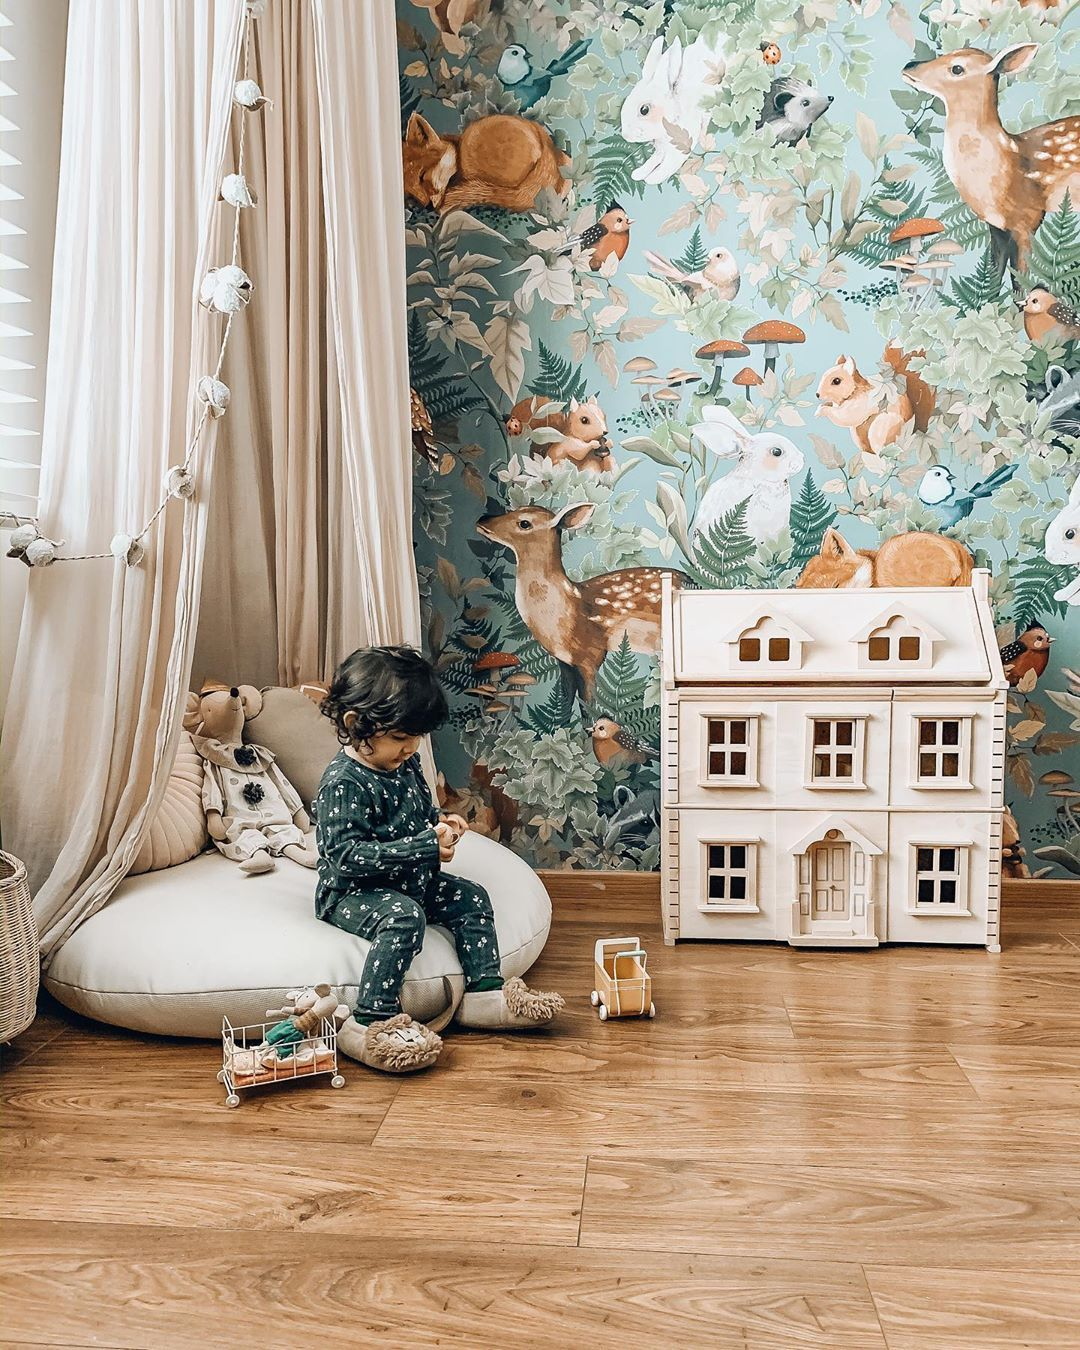 Saraa On Instagram The Sweetest View Mygirl In 2020 Toddler Bed Home Decor Future Baby